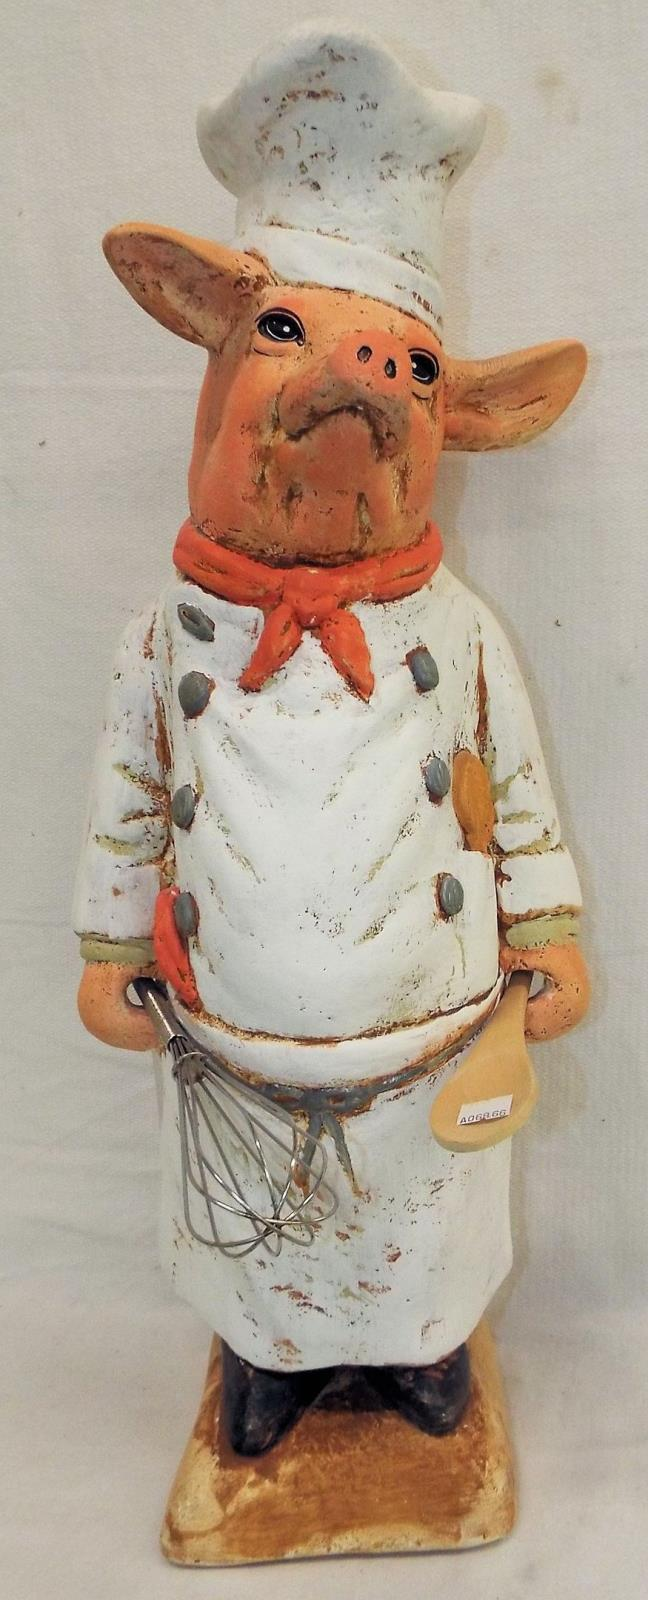 Lena White Hand Decorated Sculpture Of Chef Pig